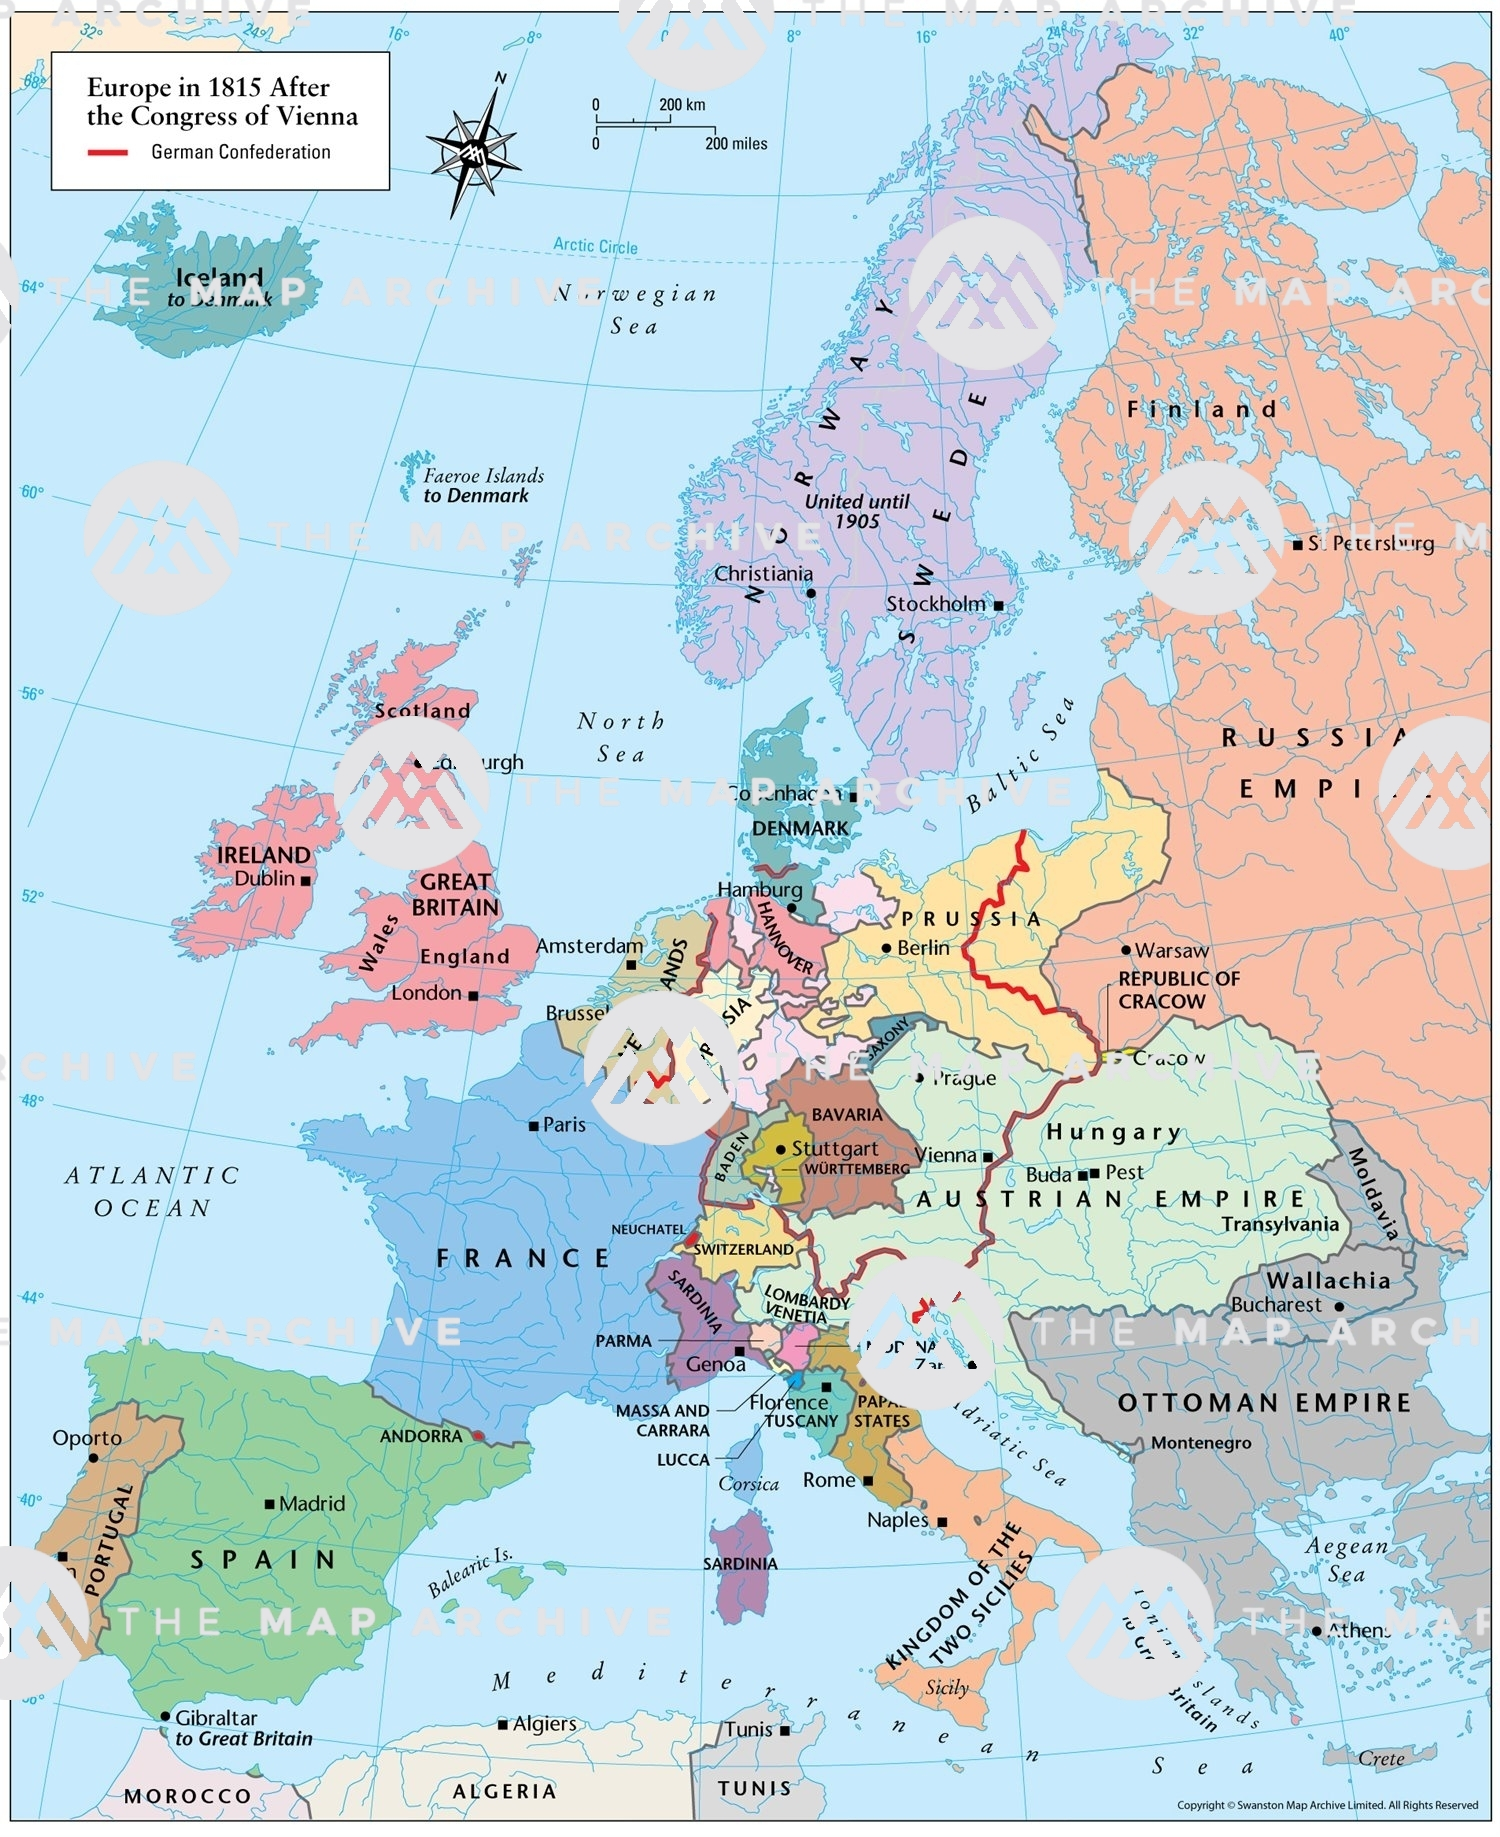 where is vienna in europe map Europe in 1815 After the Congress of Vienna